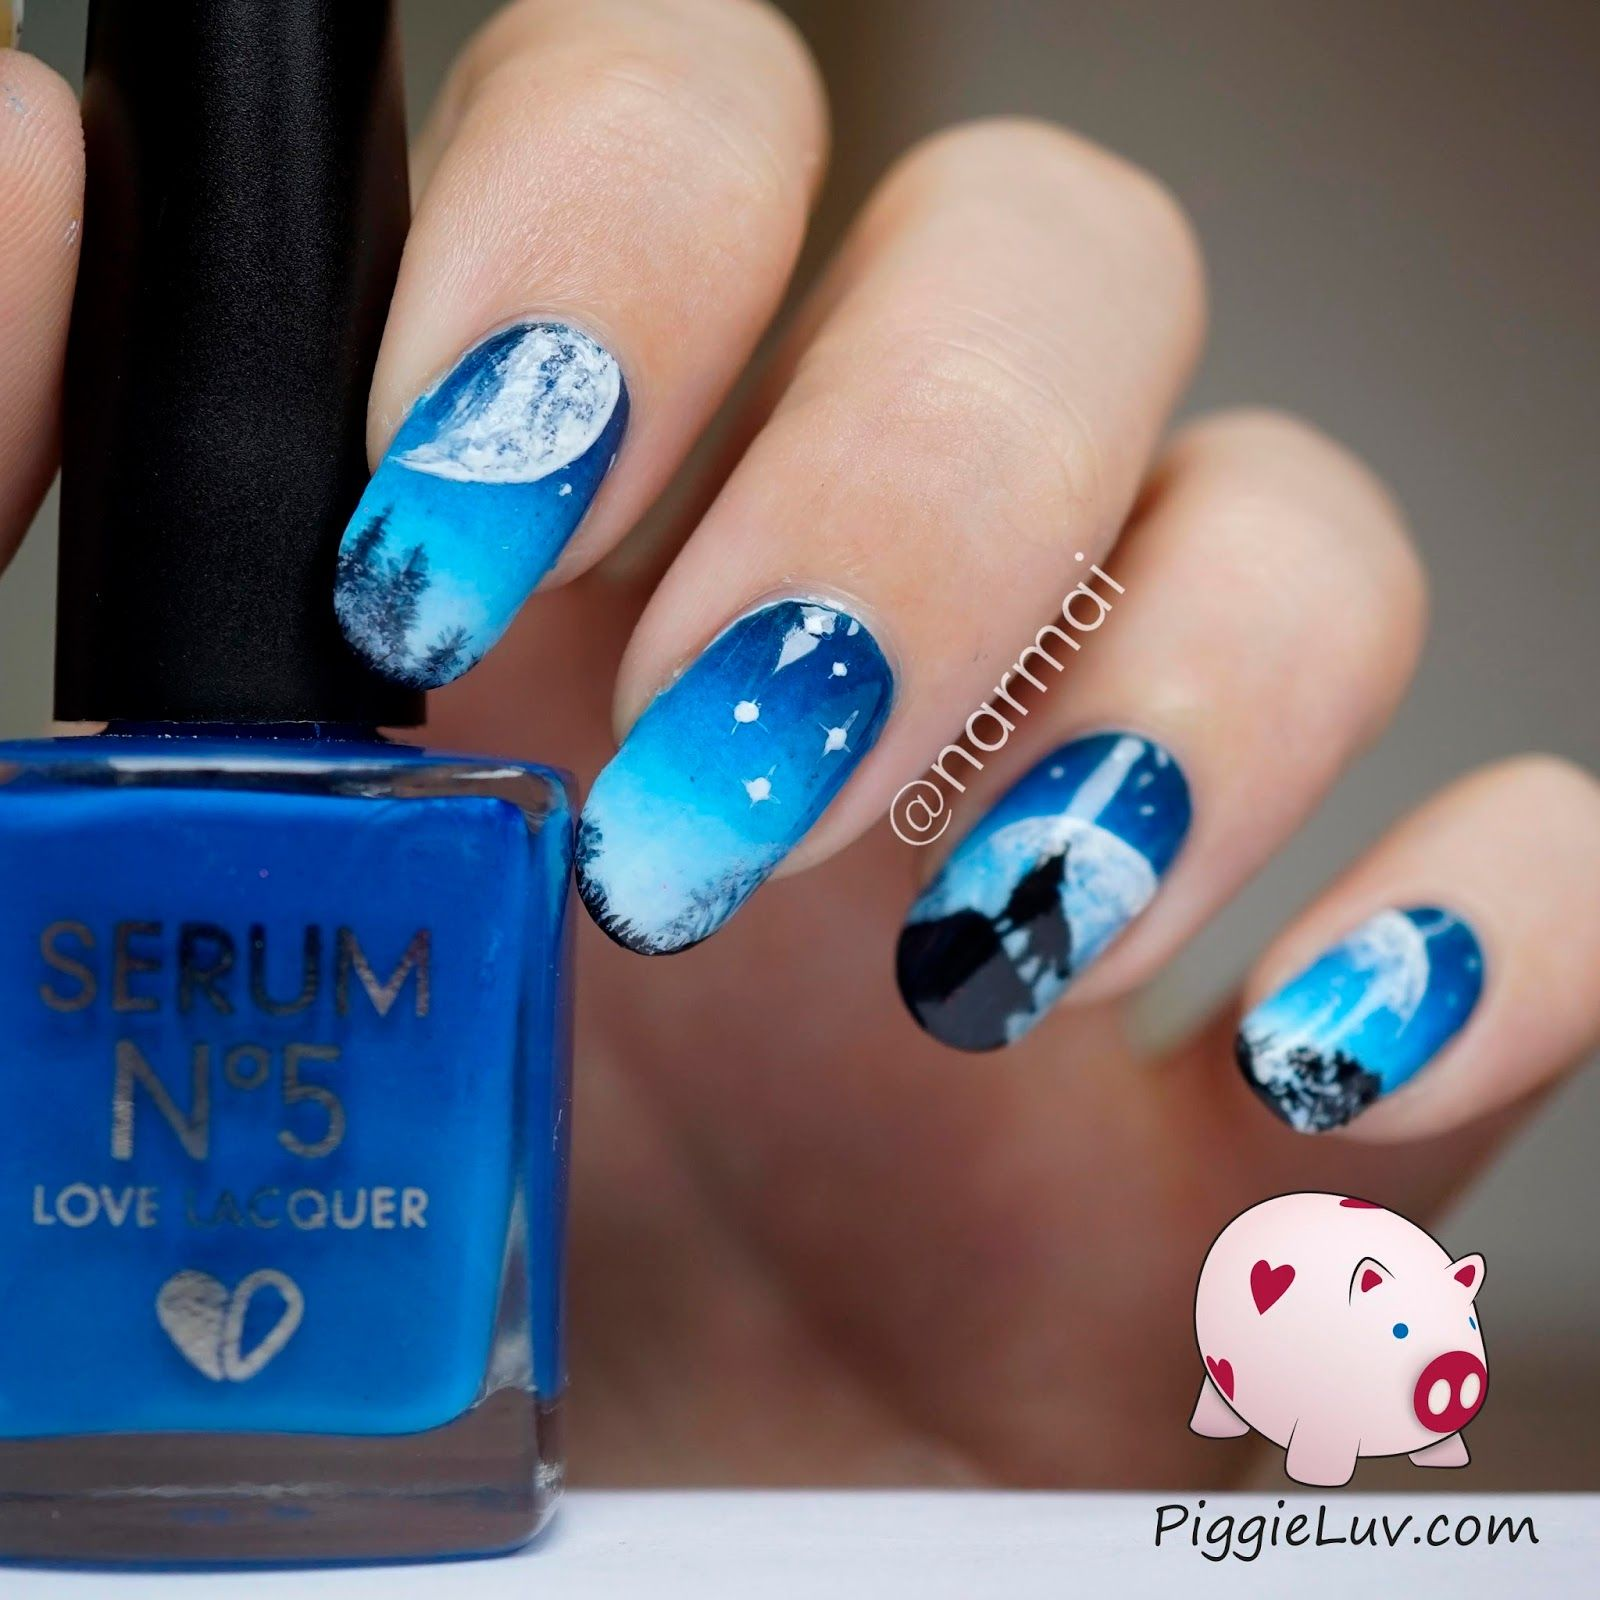 Piggieluv Galaxy Donuts Nail Art: Pin On PiggieLuv